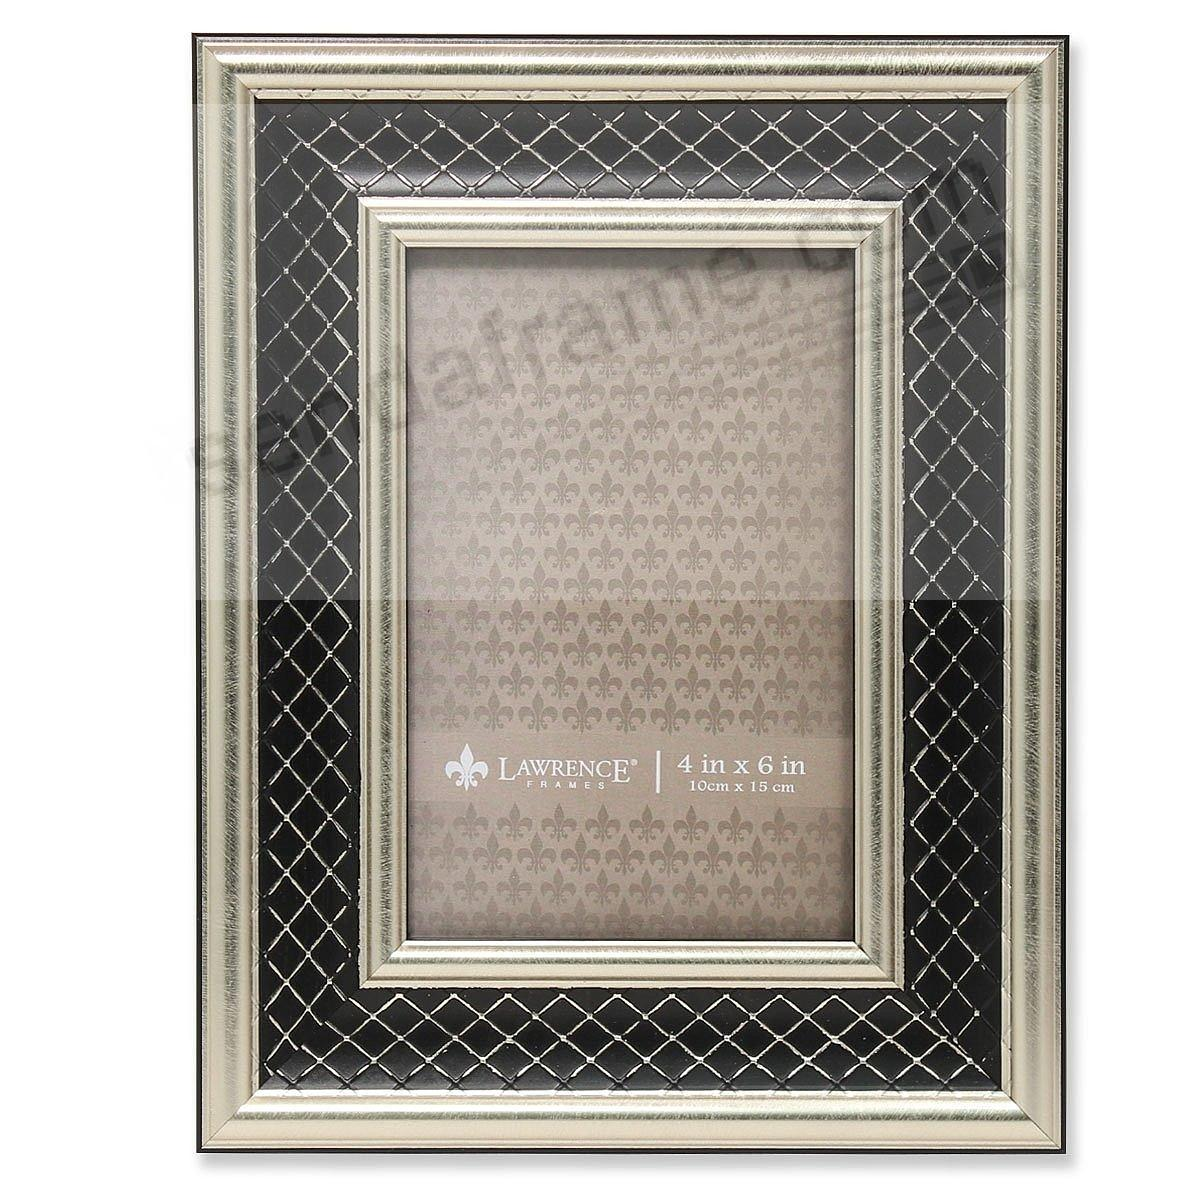 SILVER and BLACK LATTICE style frame by Lawrence Frames®